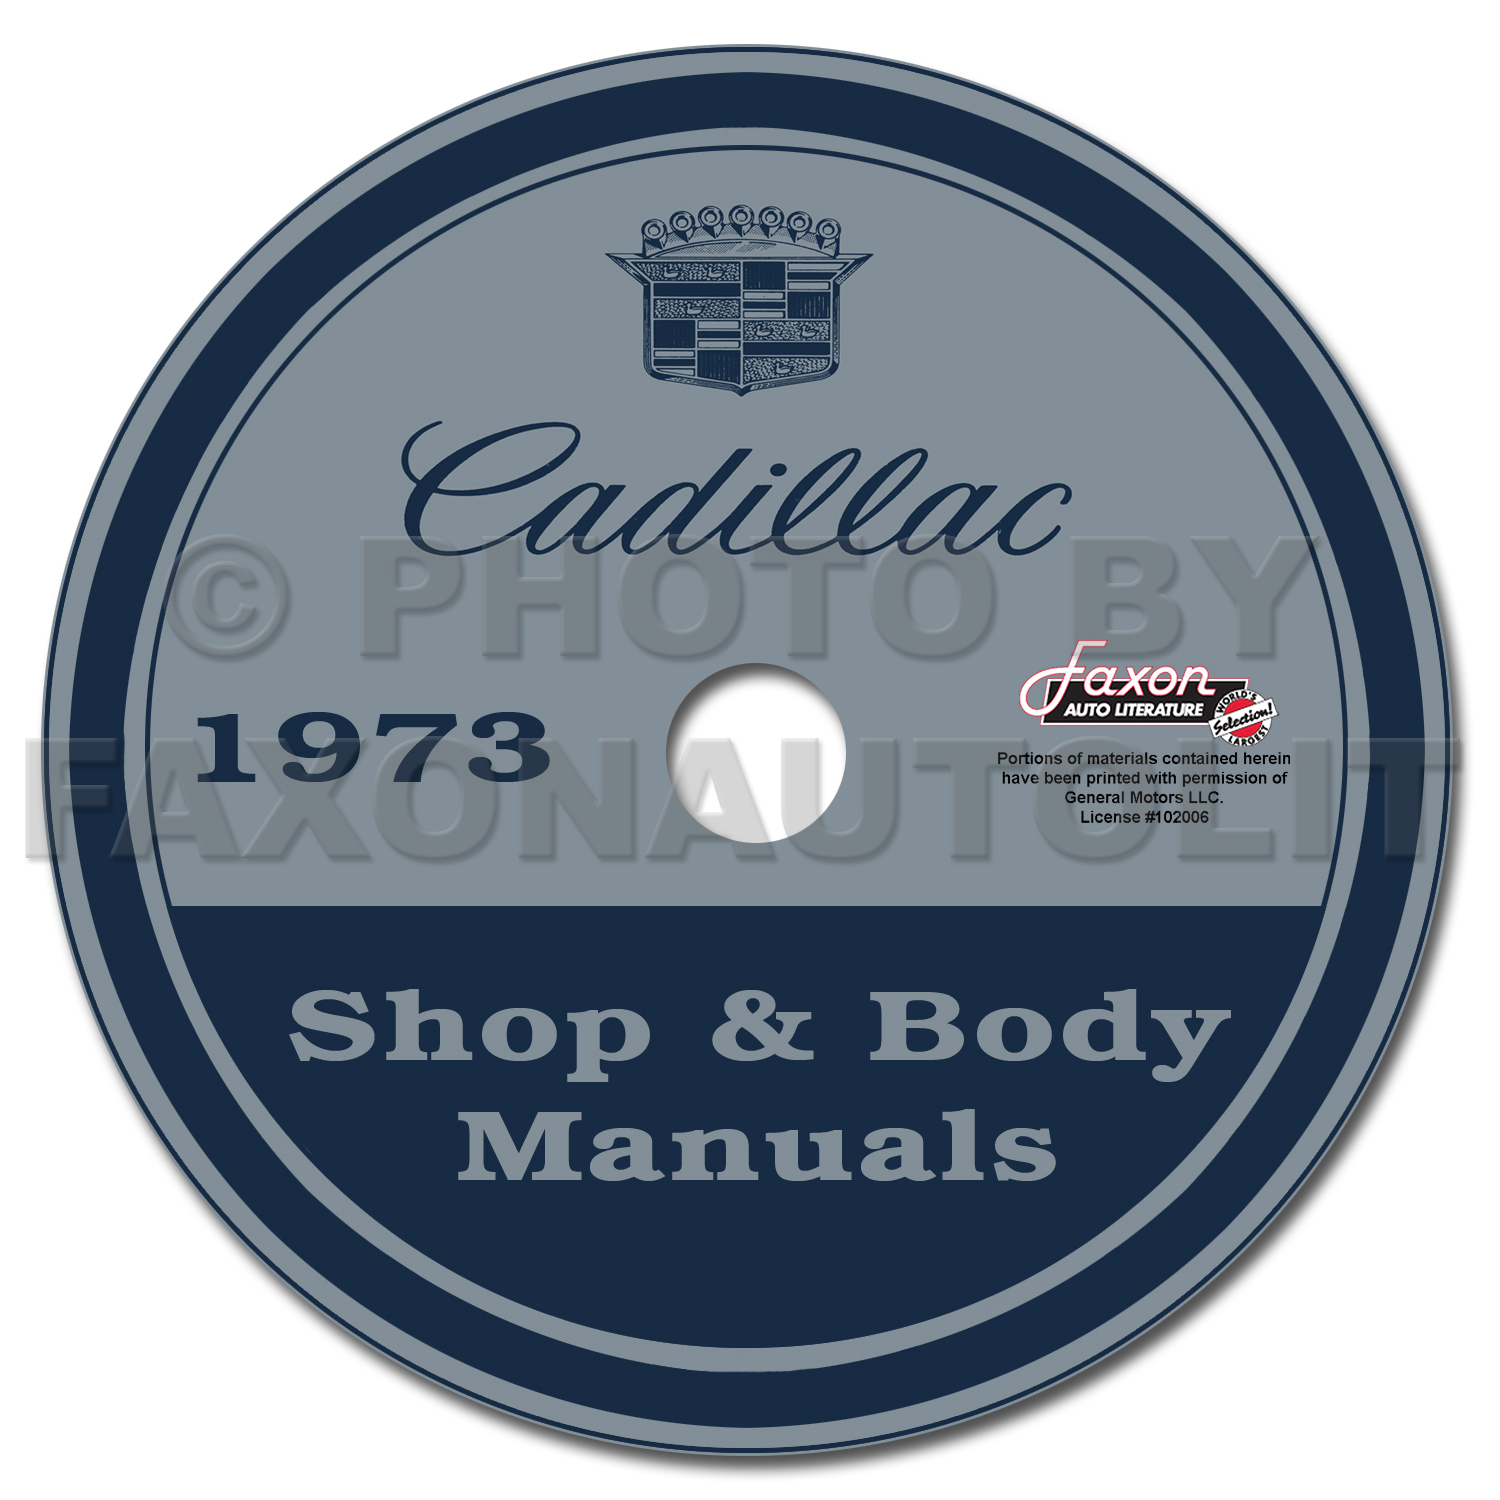 1973 Cadillac Shop Manual & Body Manual on CD-ROM